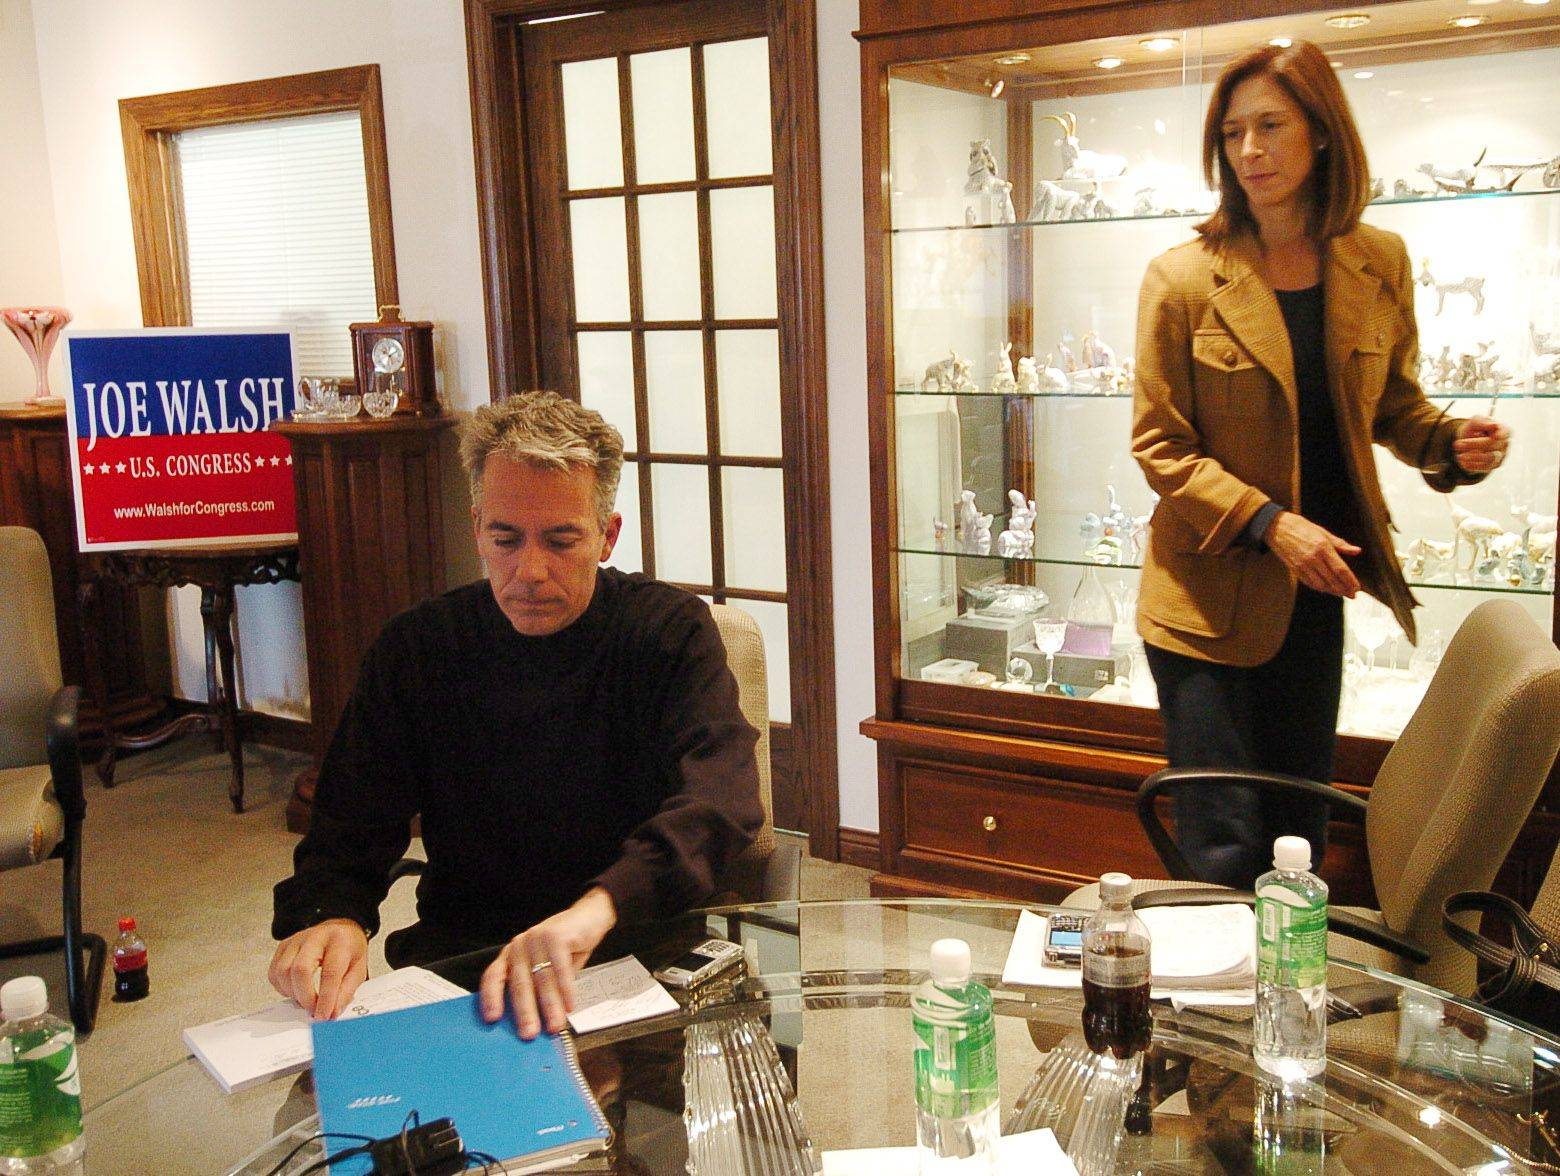 8th District candidate Joe Walsh working out of a makeshift office provided by M.J. Miller & Co. in Barrington on the day after the election with his wife Helene.